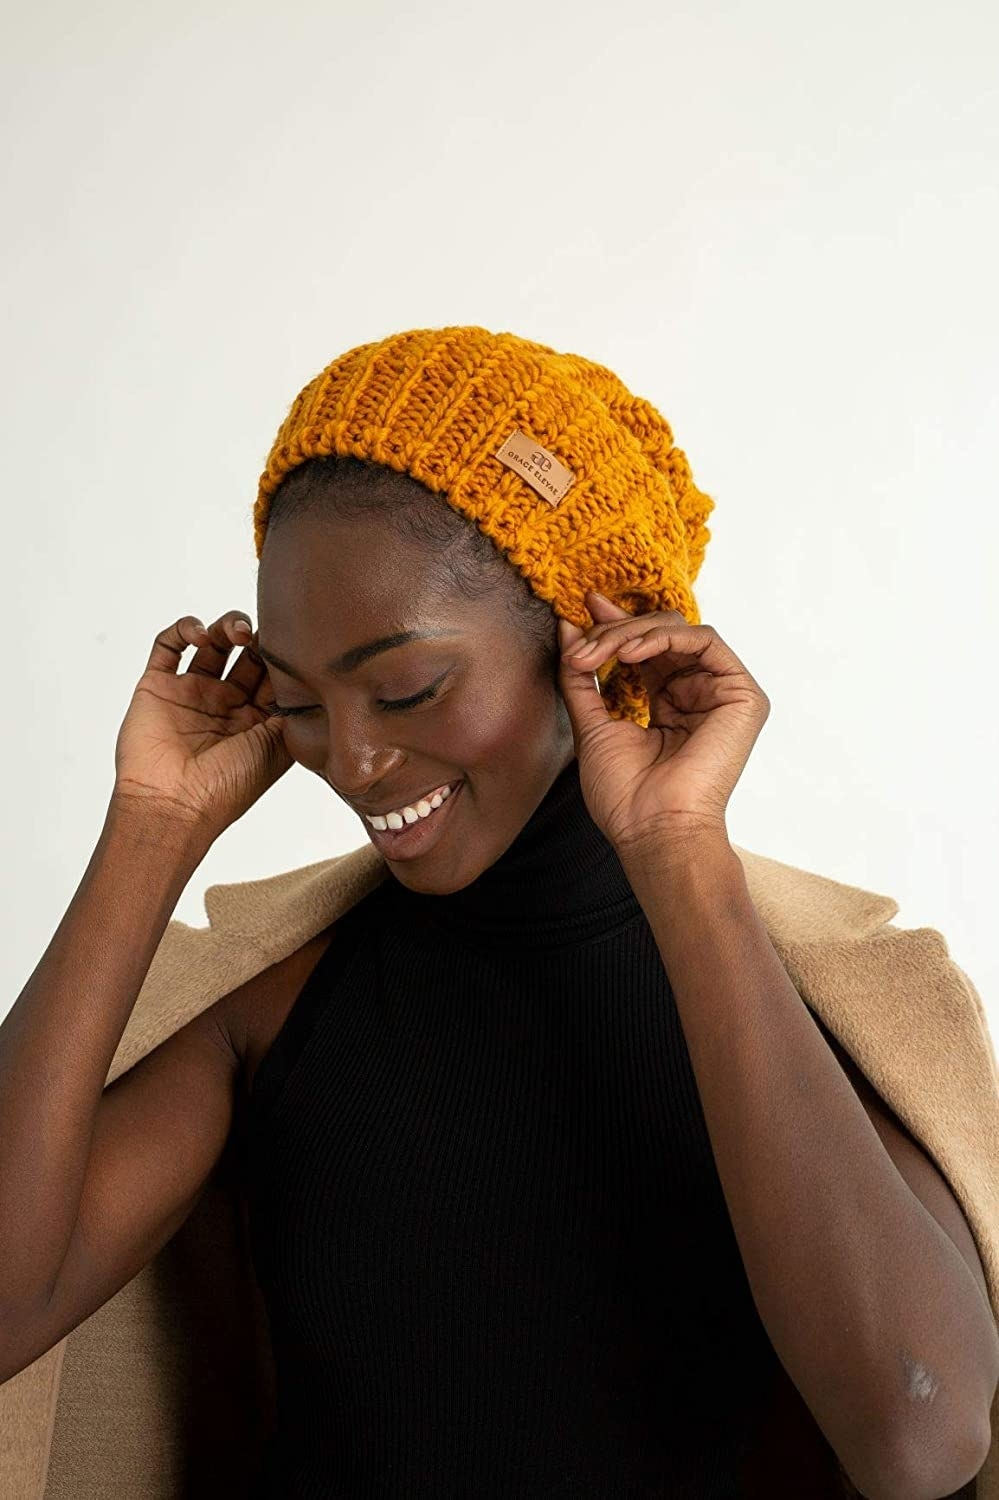 a model wearing the beanie in a mustard yellow color